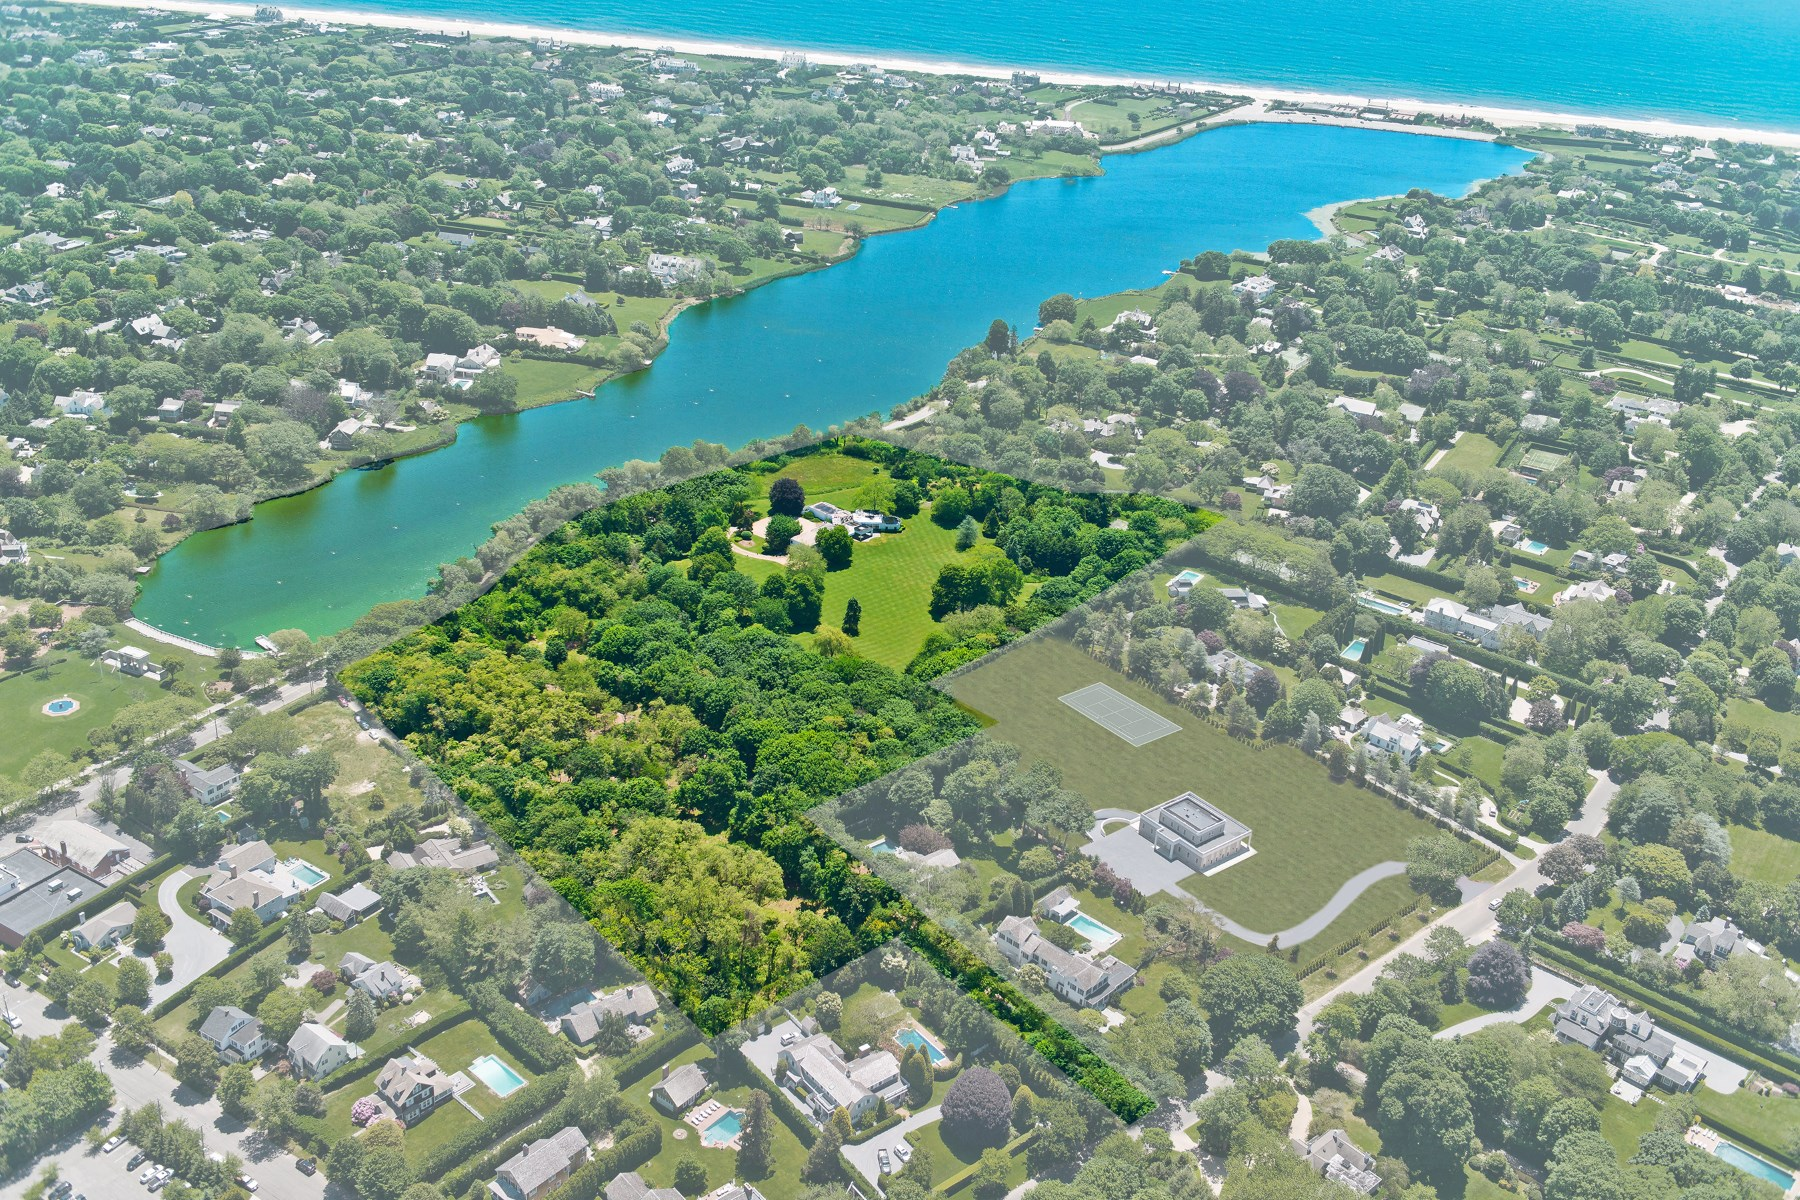 一戸建て のために 売買 アット Overlooking Lake Agawam 111, 137, 153 Pond Lane & 52 First Neck Lane 4 properties combined Southampton Estate Section, Southampton, ニューヨーク, 11968 アメリカ合衆国